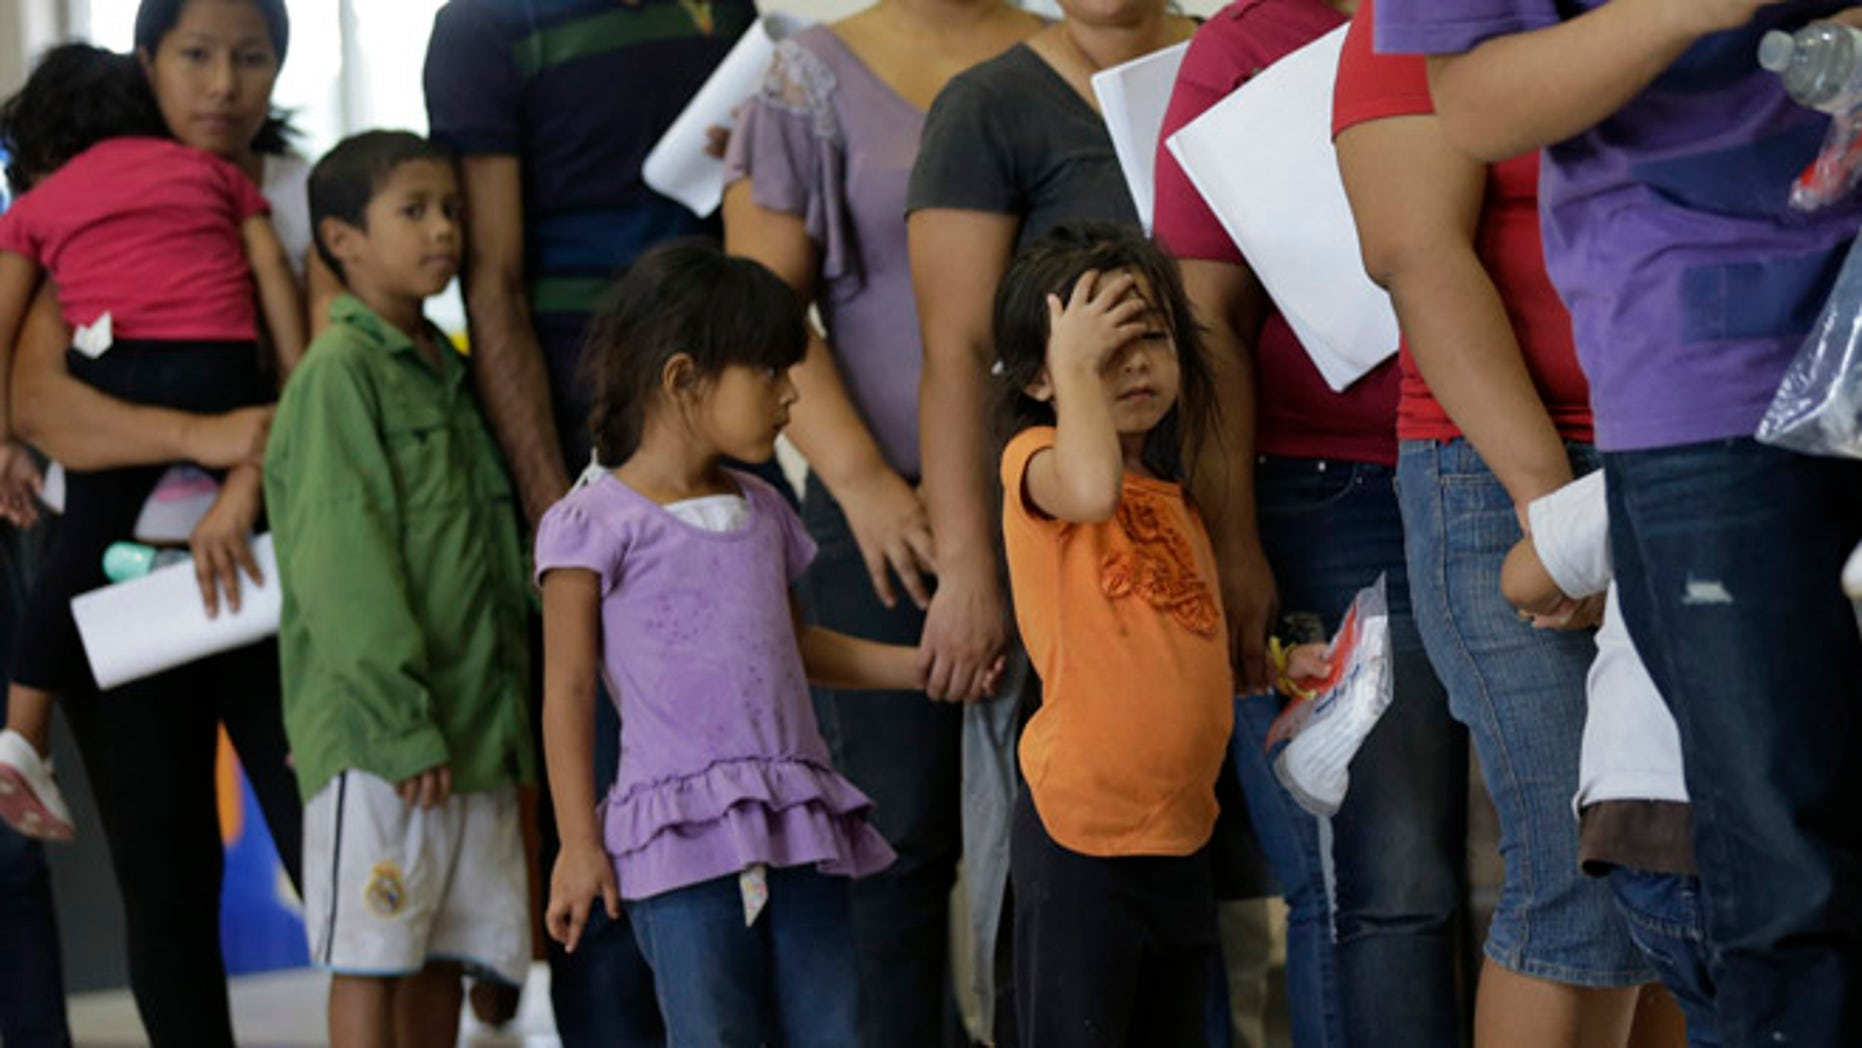 FILE - In this June 20, 2014 file photo, immigrants who entered the U.S. illegally stand in line for tickets at the bus station after they were released from a U.S. Customs and Border Protection processing facility in McAllen, Texas. Tackling what he has called a humanitarian crisis, President Barack Obama on Tuesday, July 8, 2014 asked Congress for $3.7 billion to cope with a tide of minors from Central America who are illegally crossing the U.S. border, straining immigration resources and causing a political firestorm in Washington.  (AP Photo/Eric Gay, File)